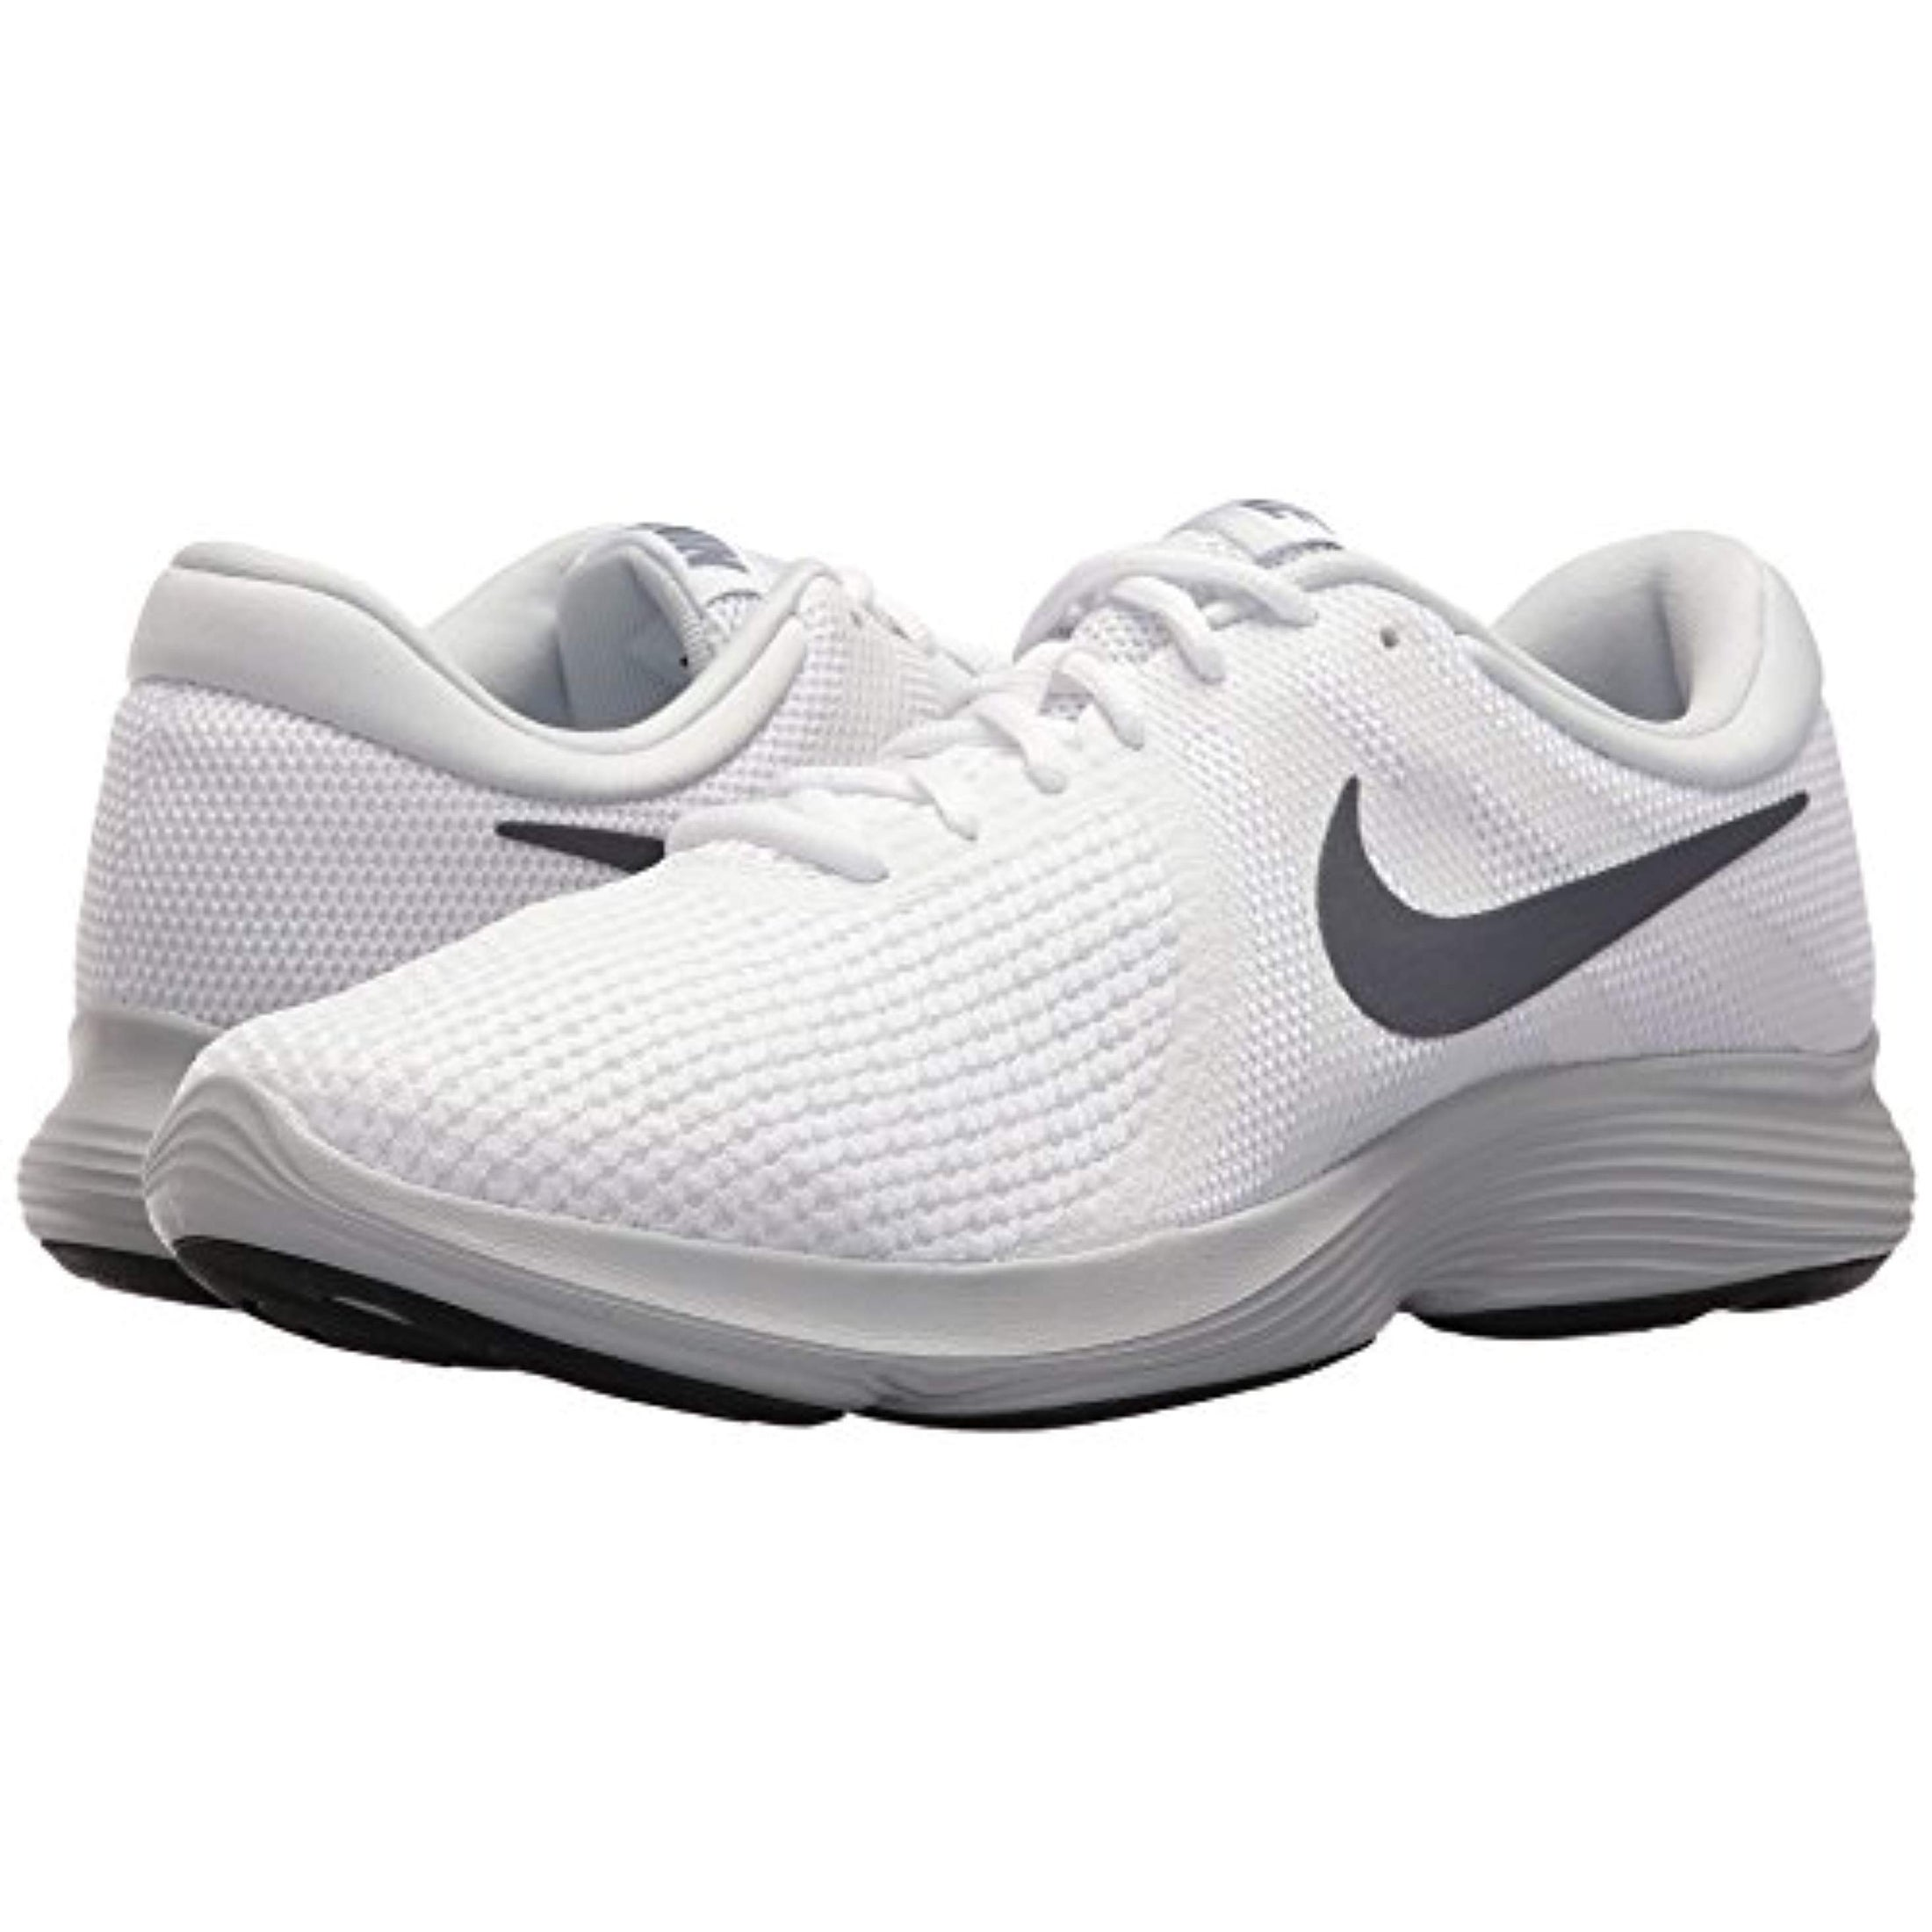 168872ef82 Shop Nike Men s Revolution 4 White Light Carbon-Pure Platinum Running Shoes  - Free Shipping Today - Overstock.com - 26432242